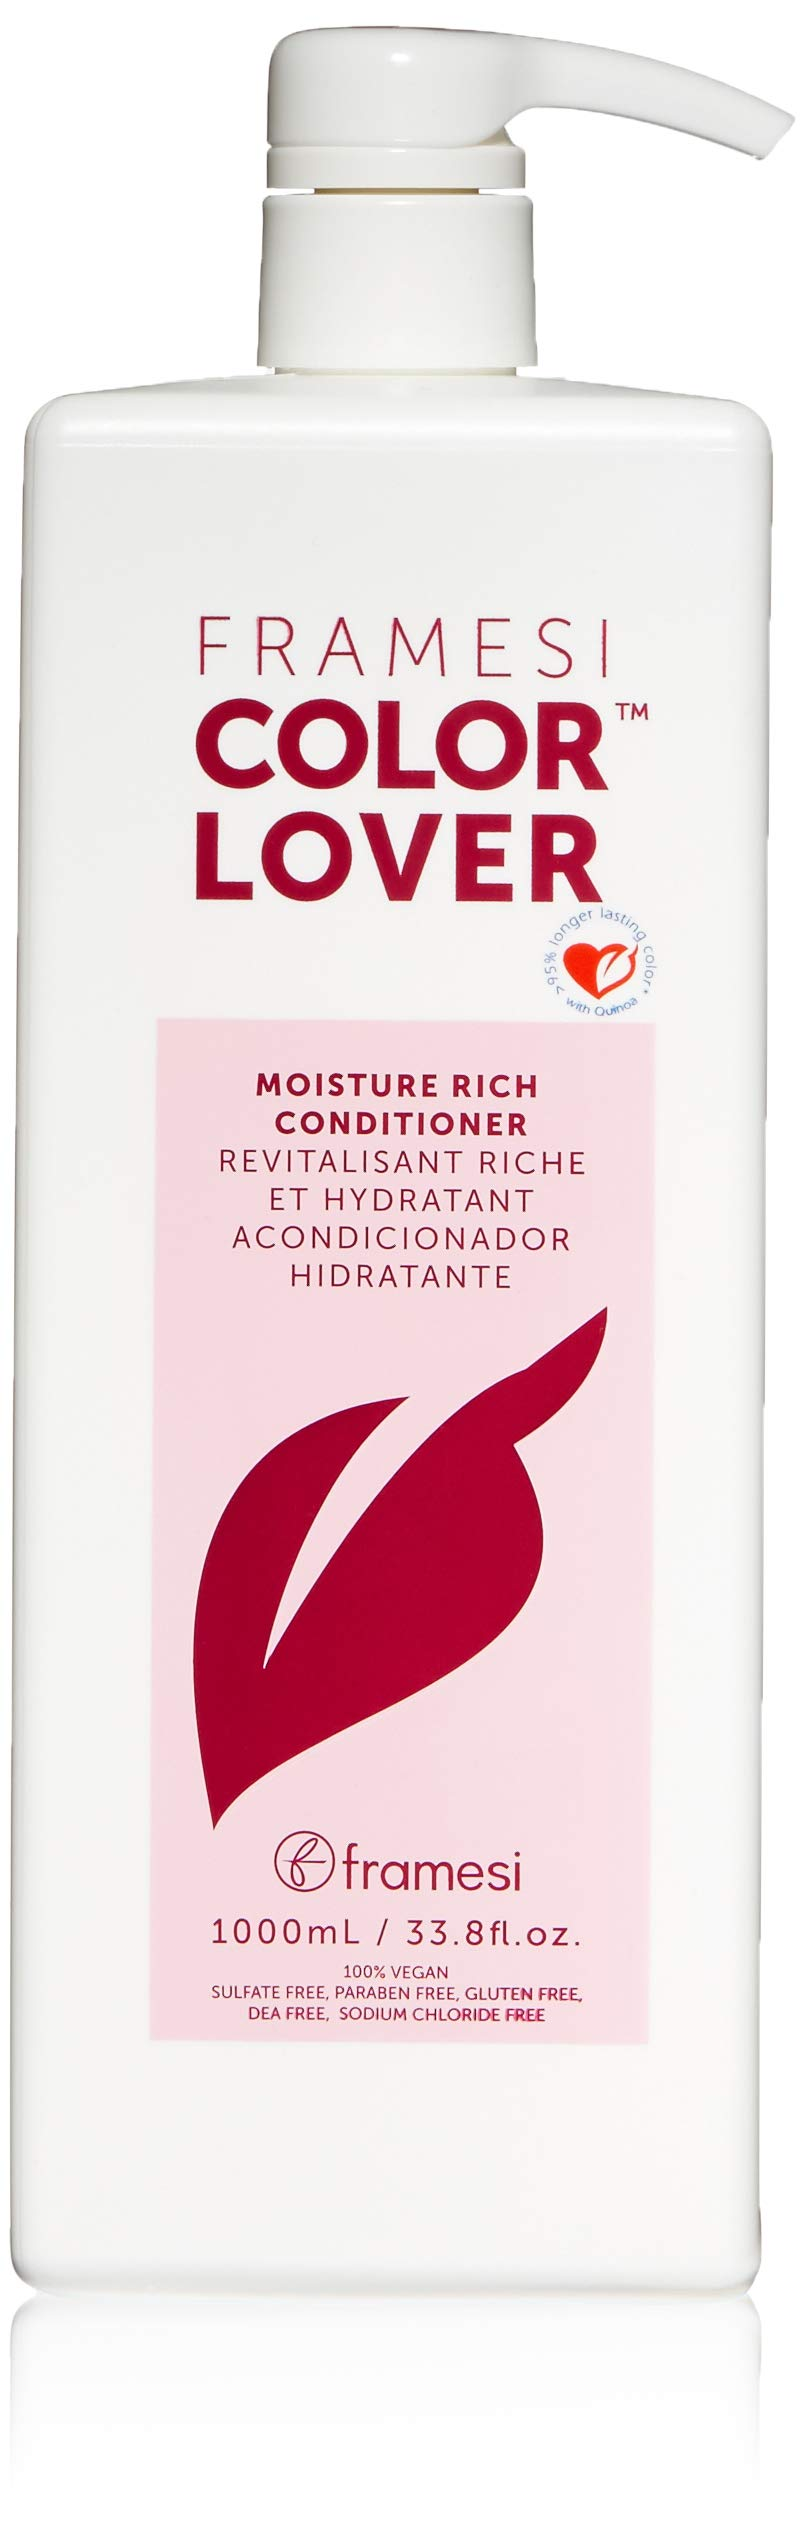 Framesi Color Lover Moisture Rich Conditioner - 33.8 Ounce, Hydrating Conditioner, Color Safe, Moisturizing Conditioner, Vegan, Gluten Free, Cruelty Free